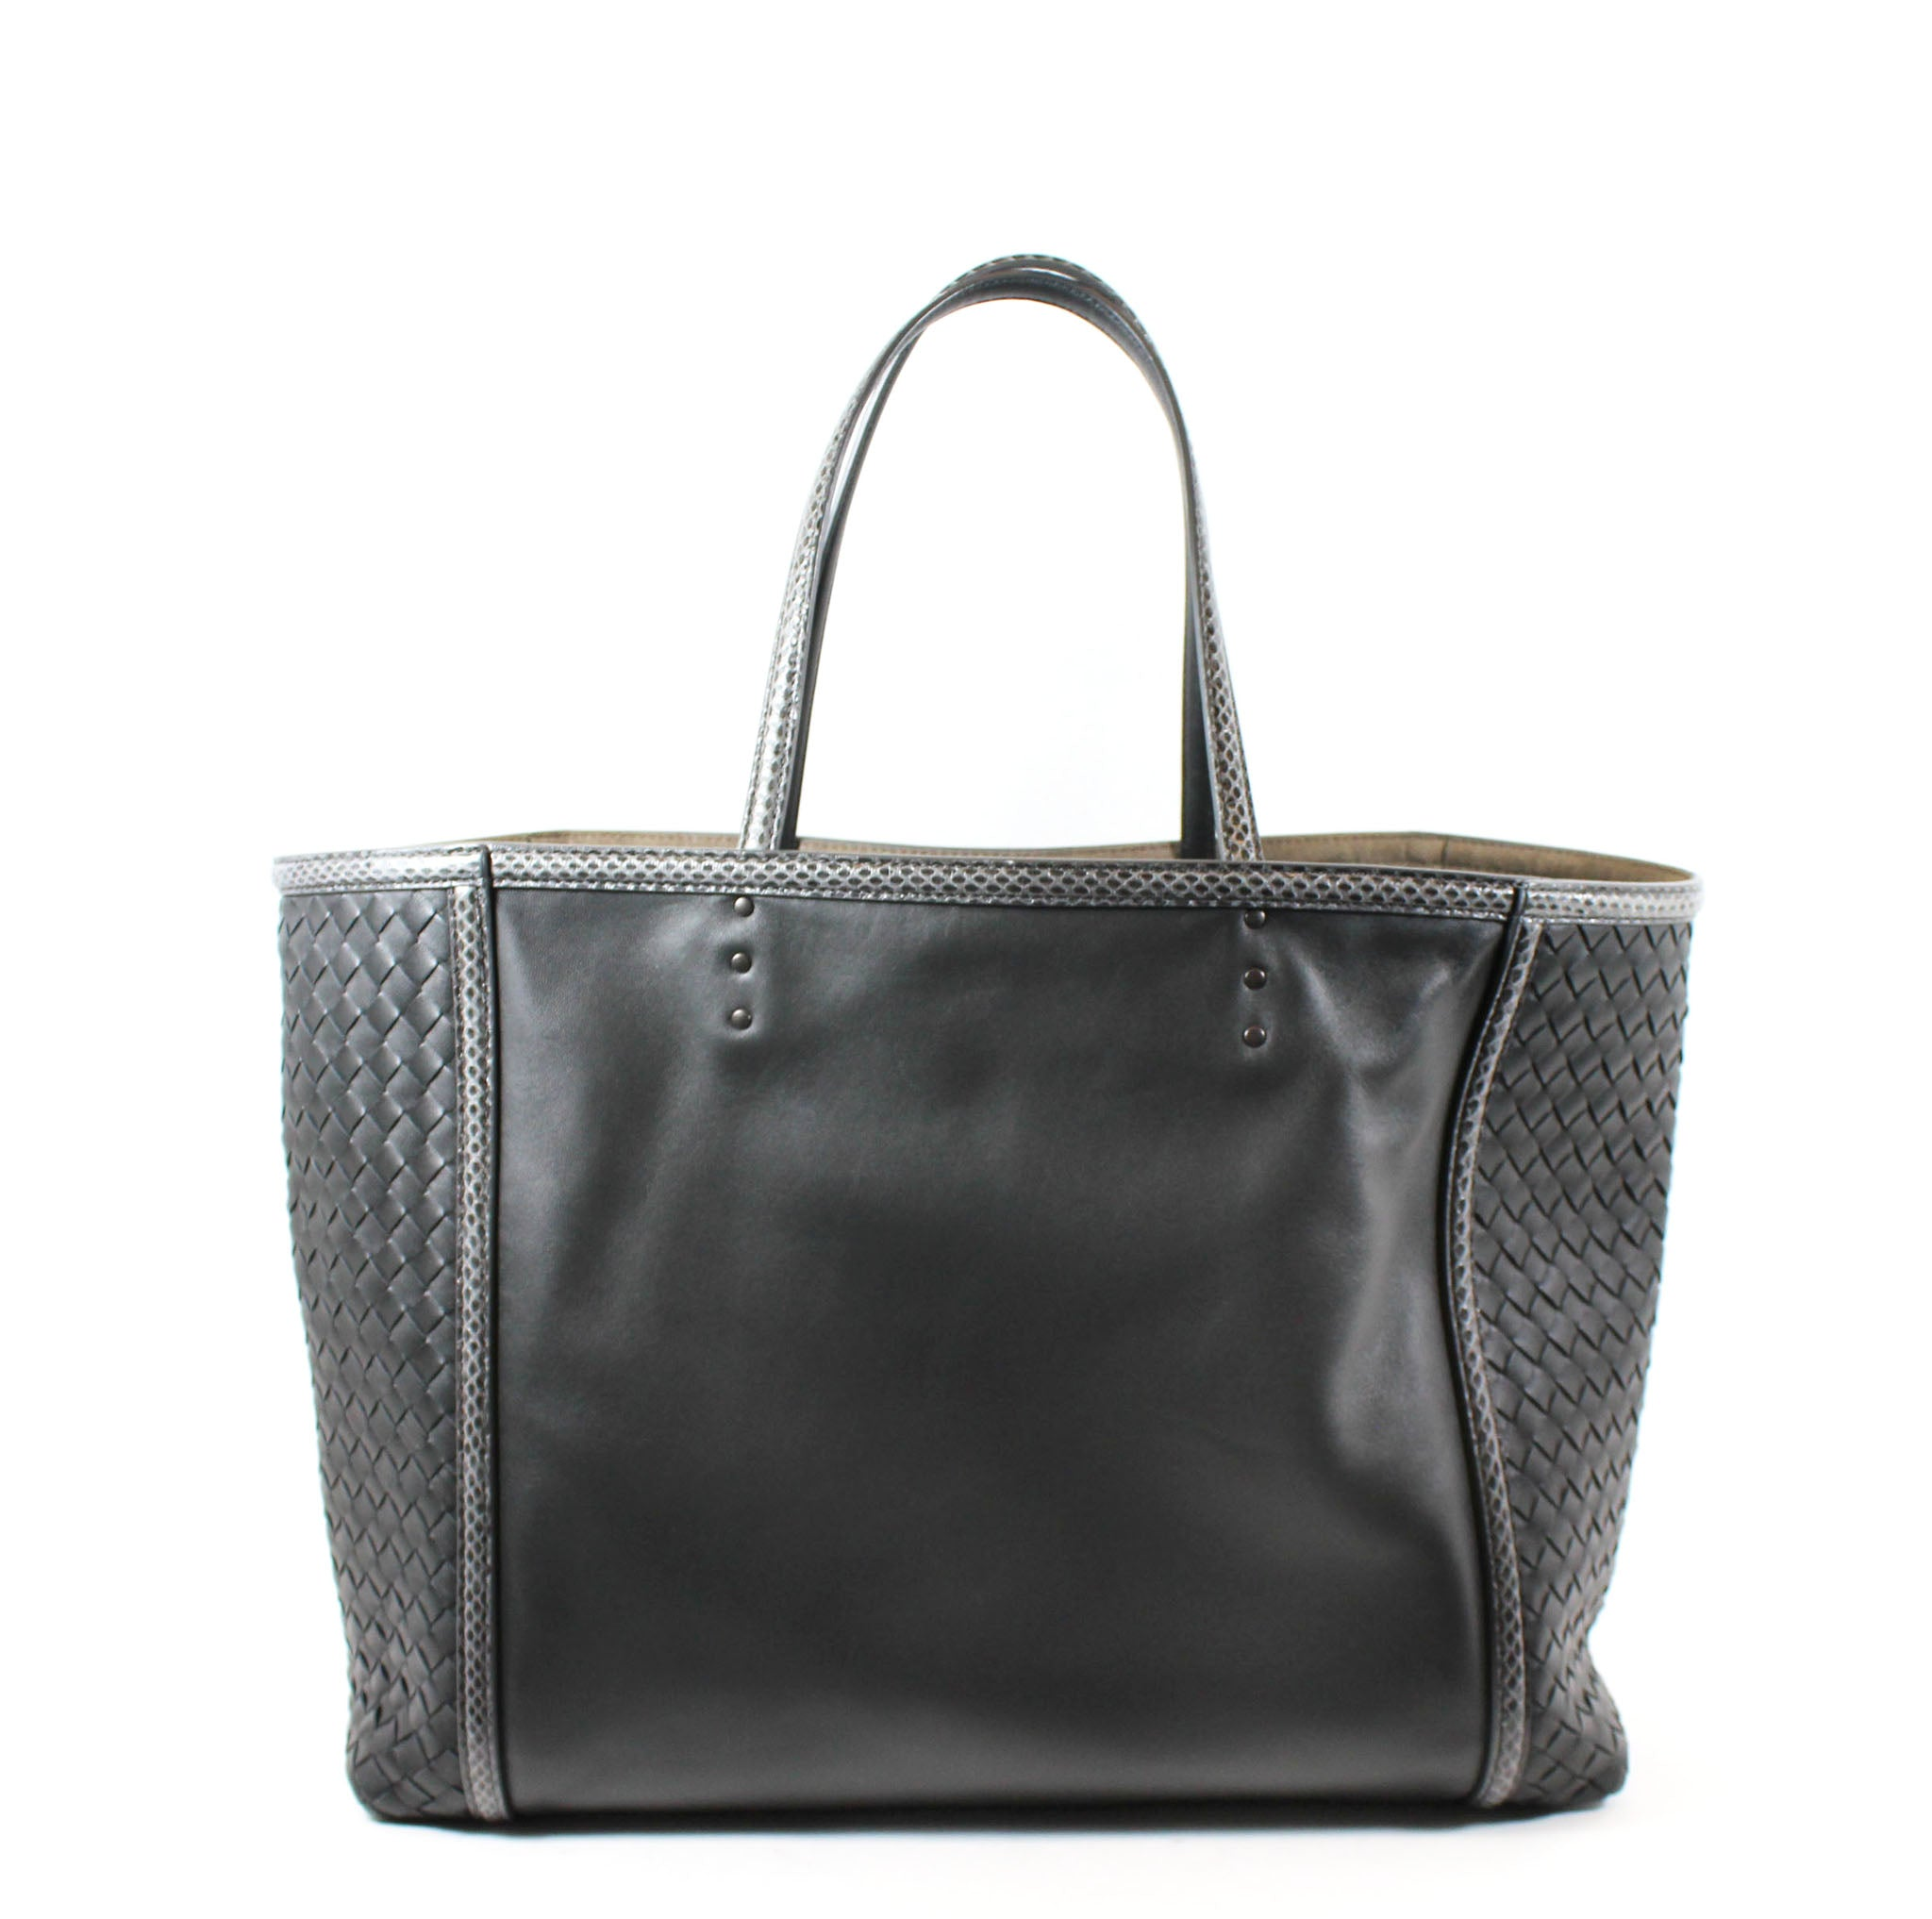 ea7f07de6749 Bottega Veneta Medium Charcoal Leather Snakeskin Tote – Encore Resale.com